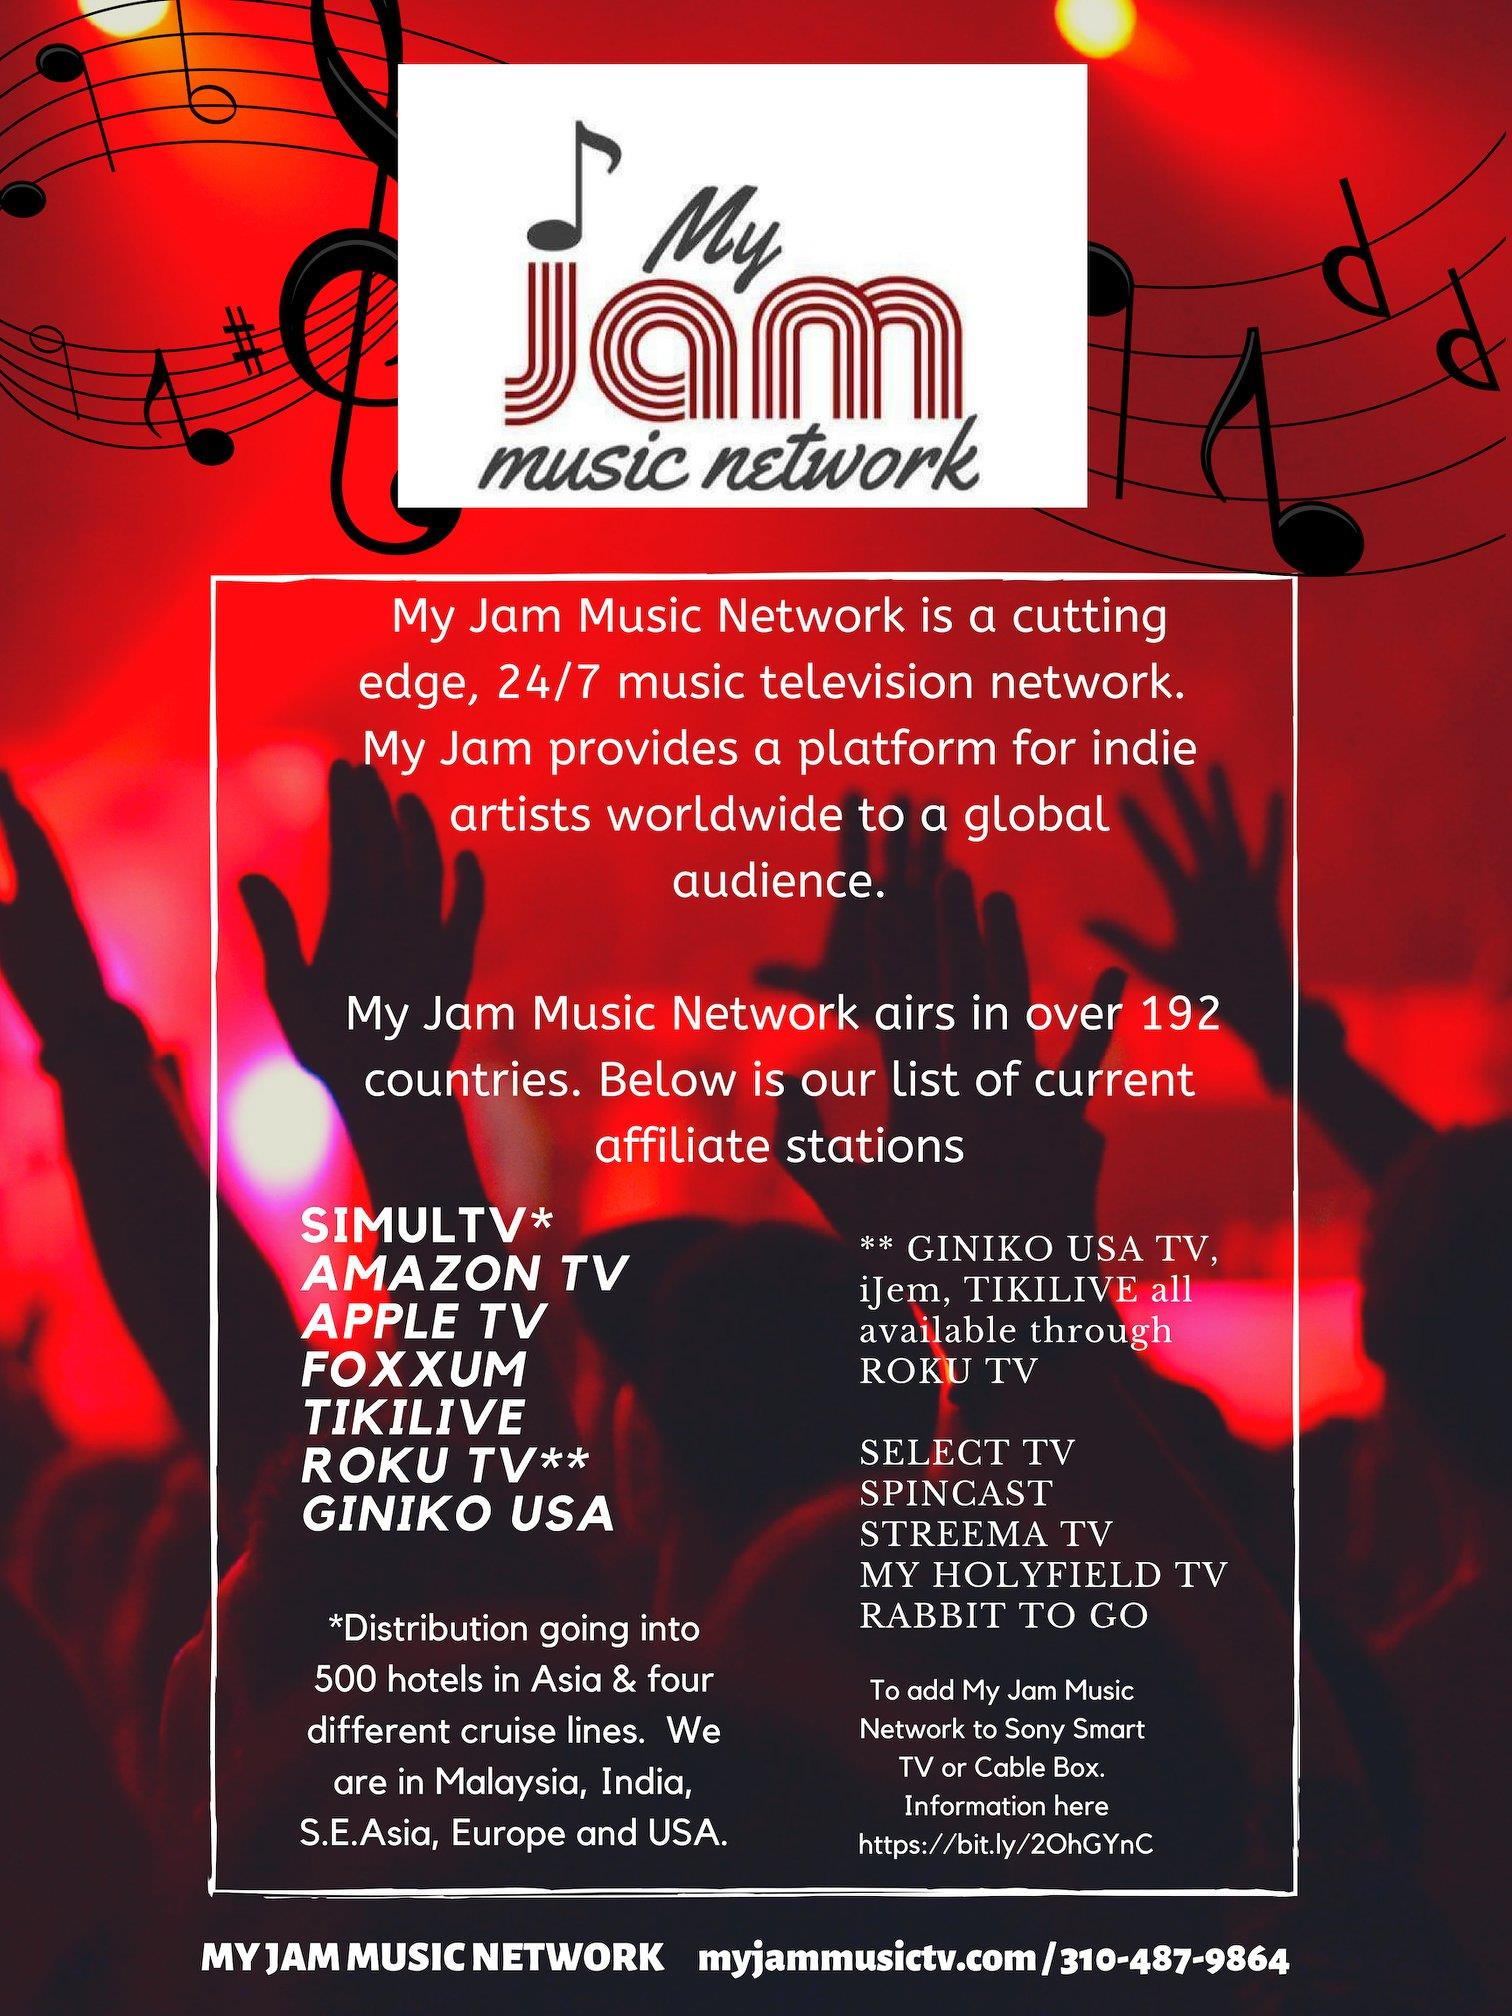 MyJamMusic Network and GigsToWatch launch new Streaming Coverage for Grass Roots Music